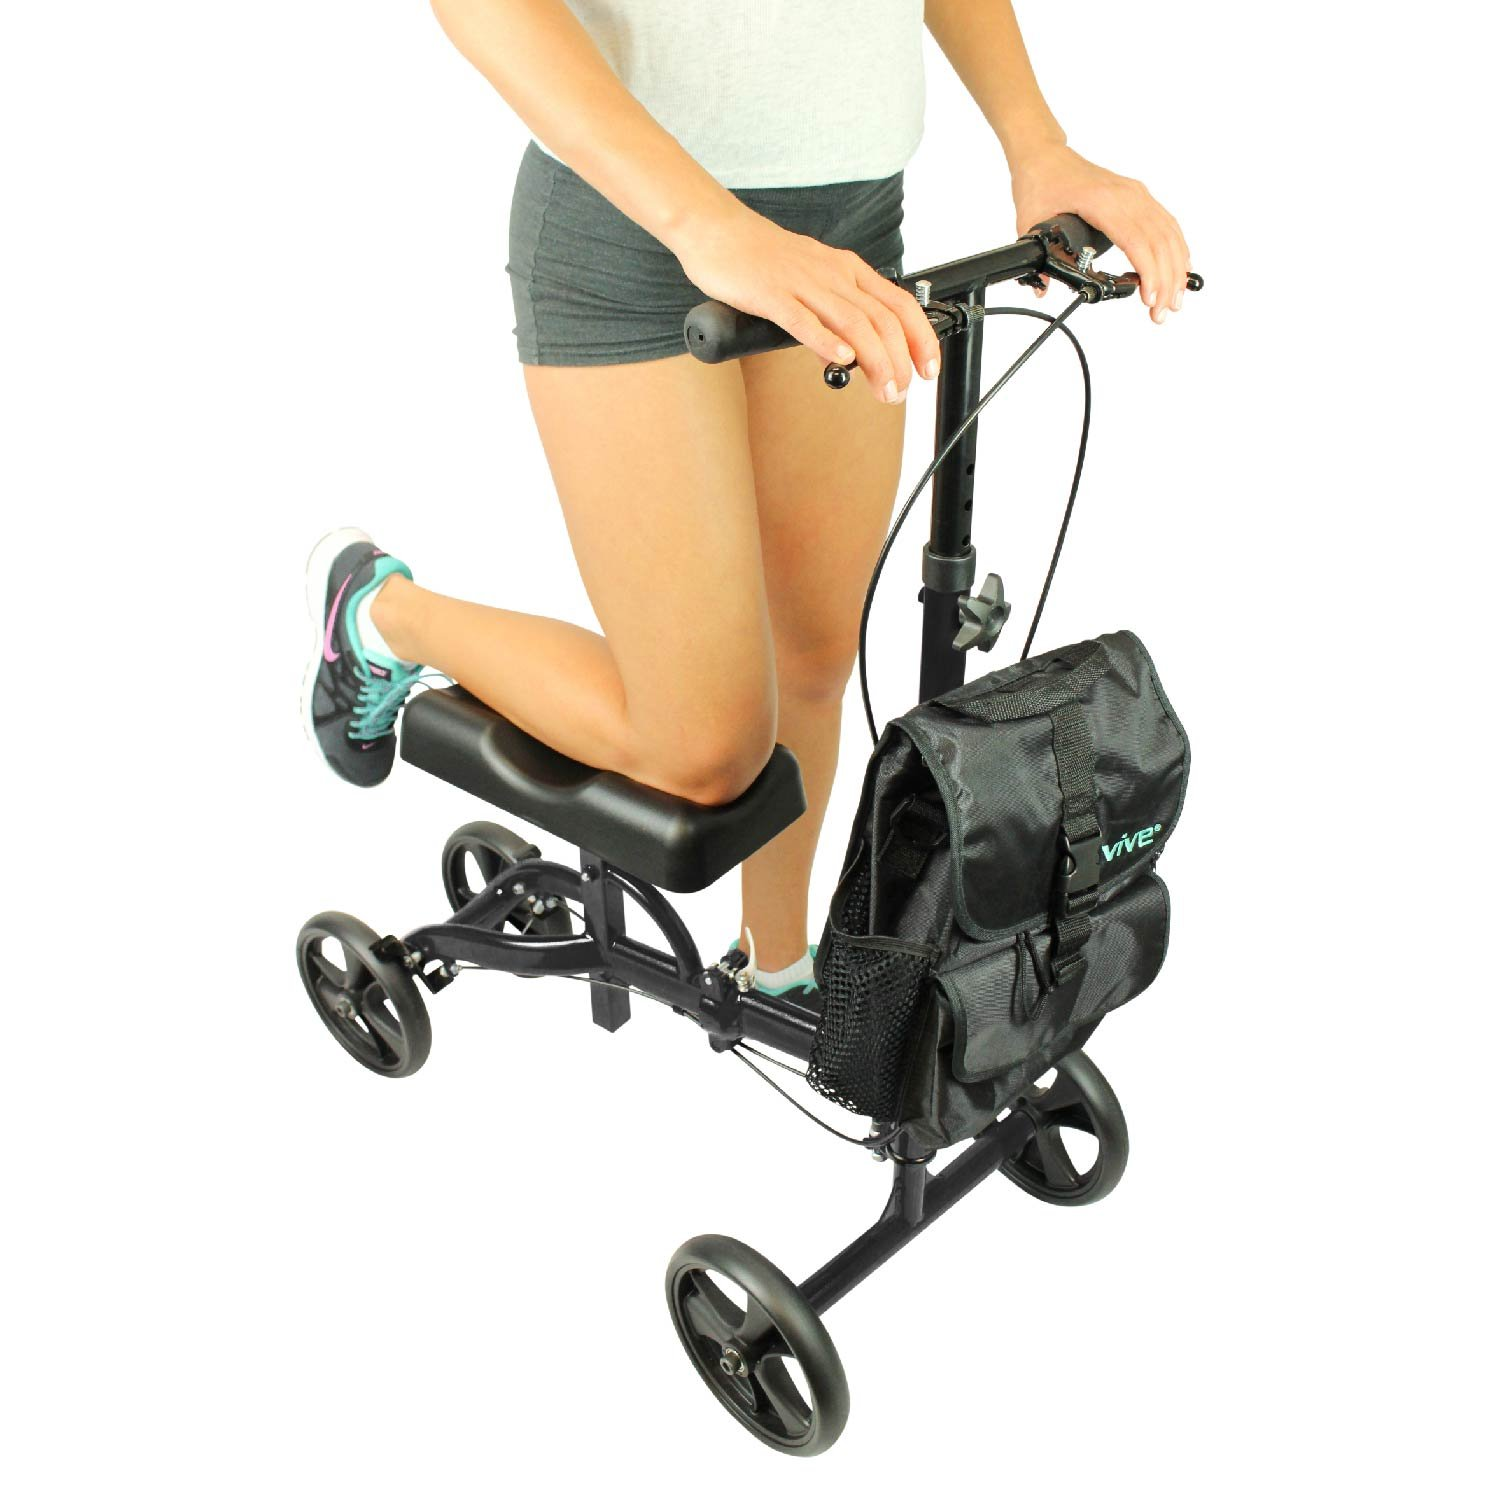 Knee Scooter by Vive [Bag Included] - Steerable Knee Walker for Broken Leg & Foot - Medical Alternative to Crutches - Kneeling Roller Cart w/ Pad for Senior & Elderly Mobility